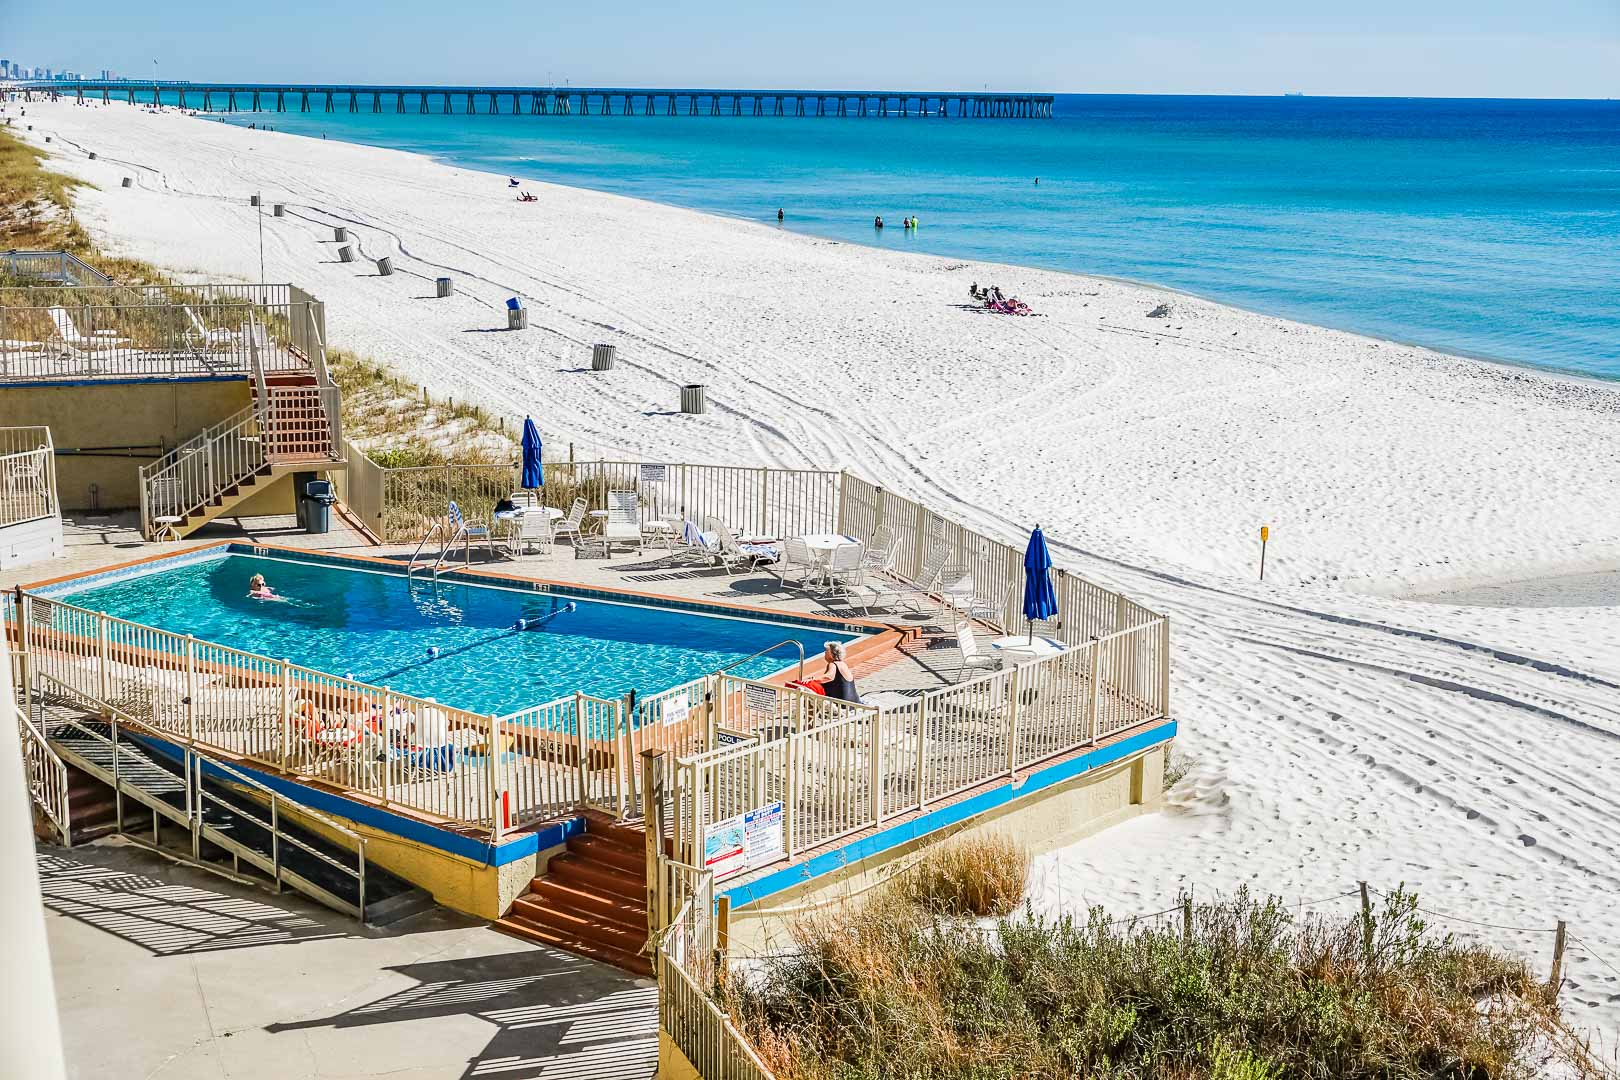 A refreshing pool with beach access at VRI's Panama City Resort & Club in Florida.